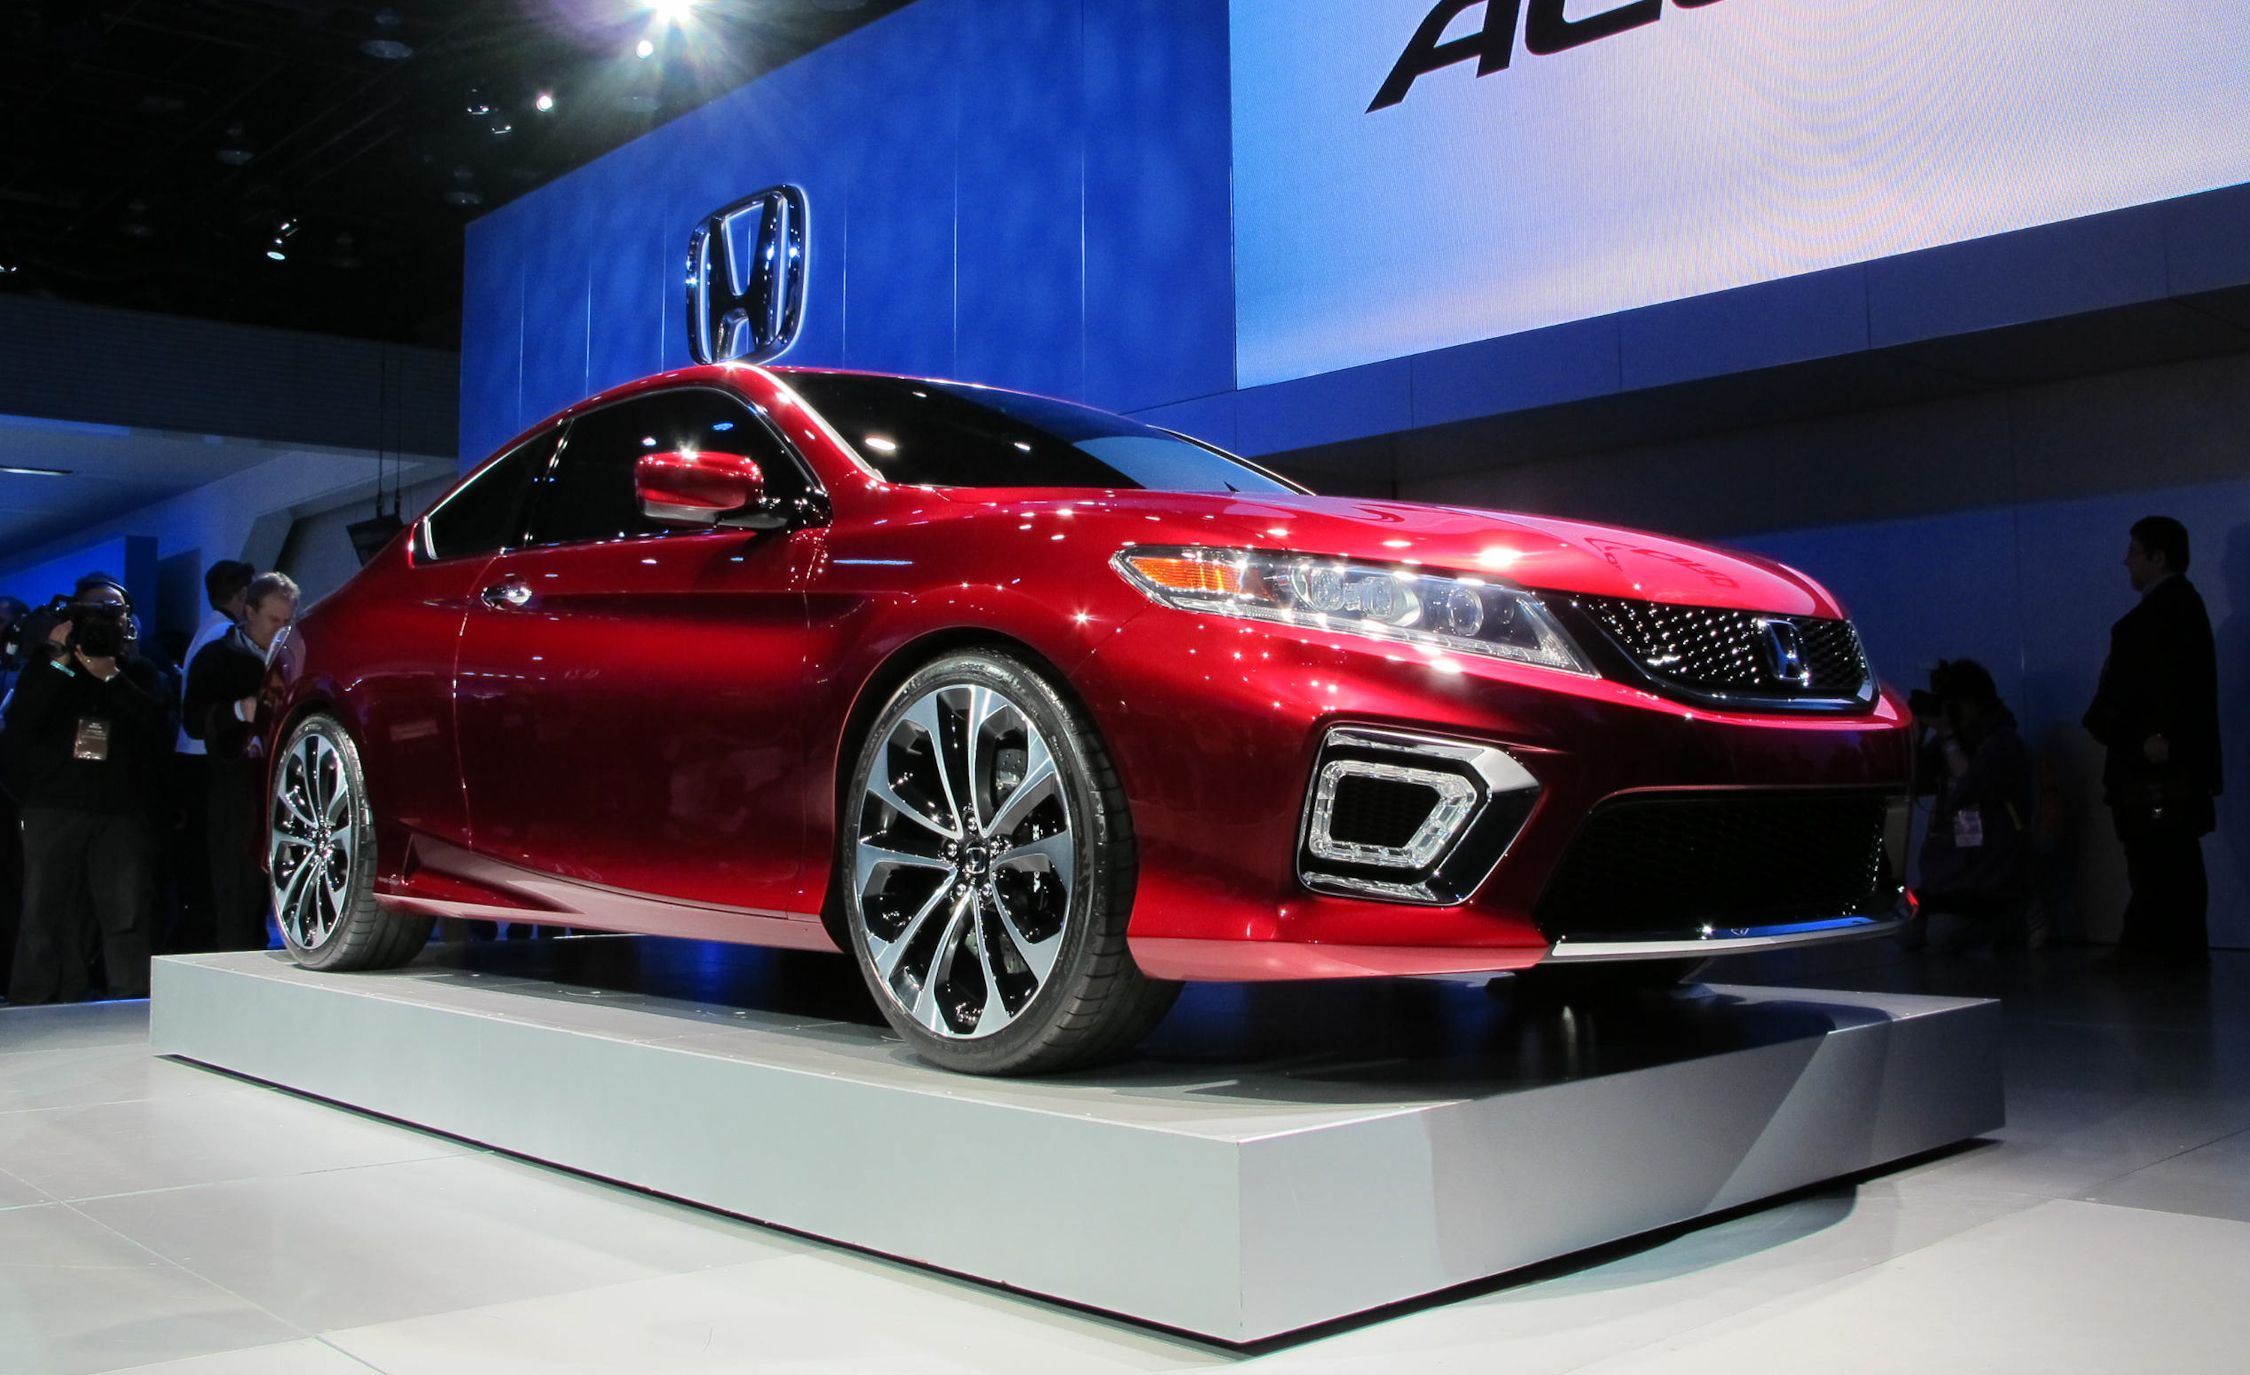 2013 Hyundai Genesis Coupe For Sale >> 2013 Honda Accord Coupe Concept Photos and Info | News | Car and Driver